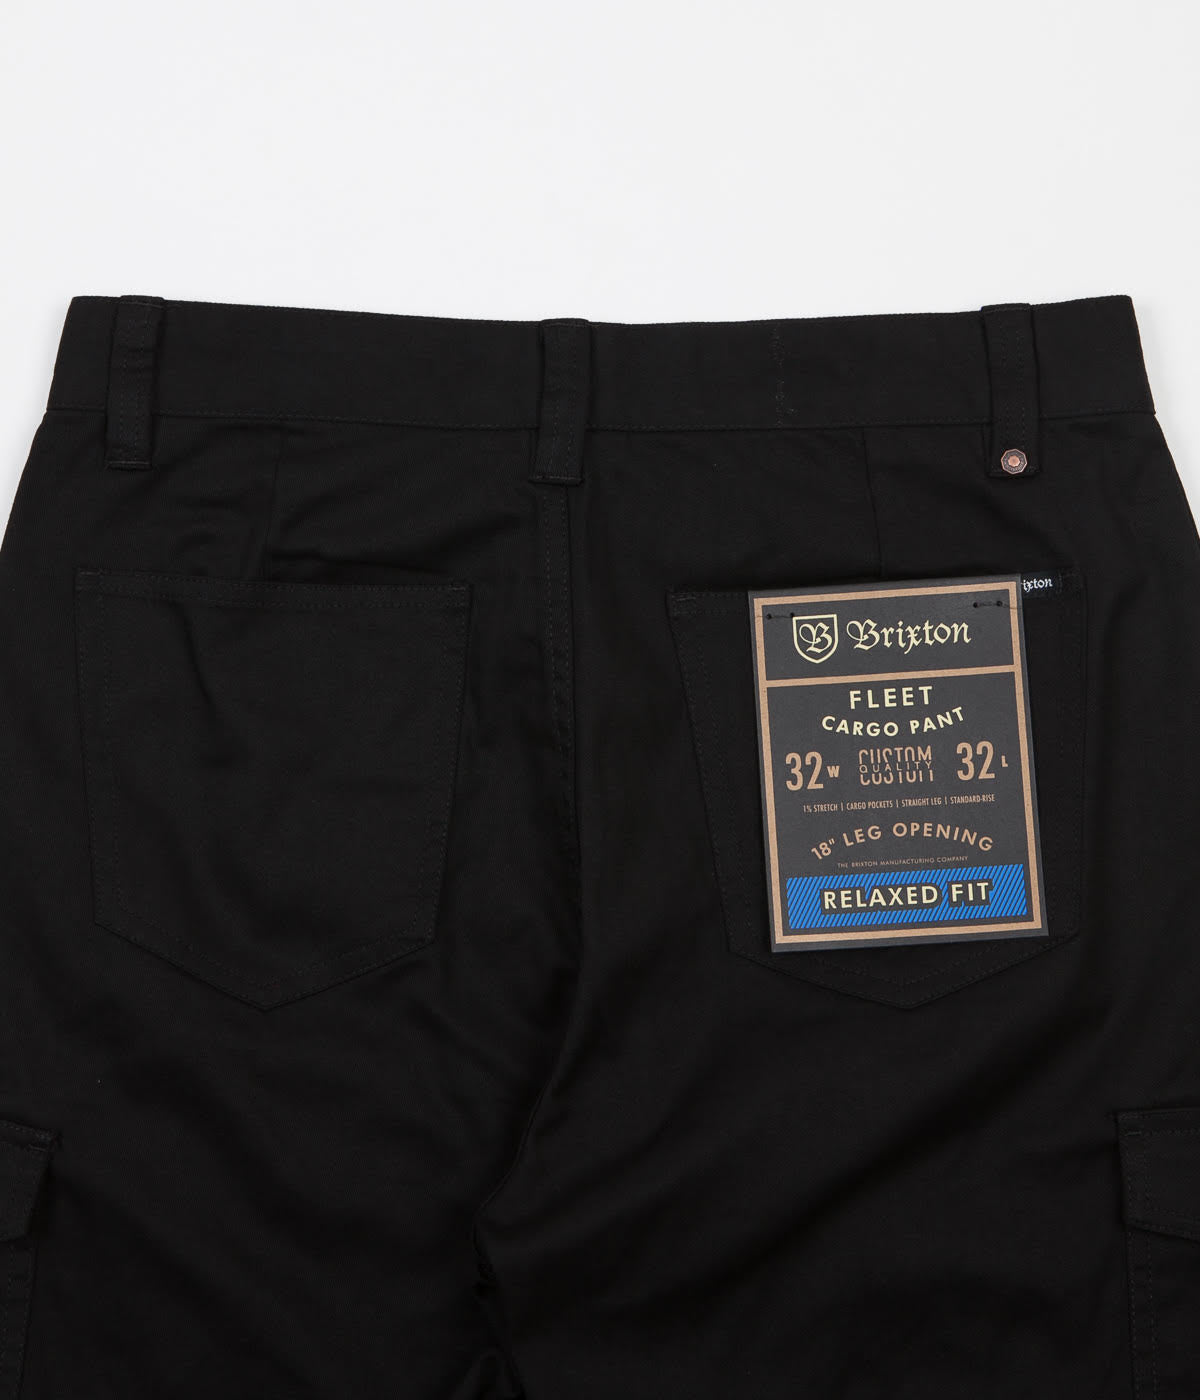 Brixton Fleet Cargo Trousers - Black